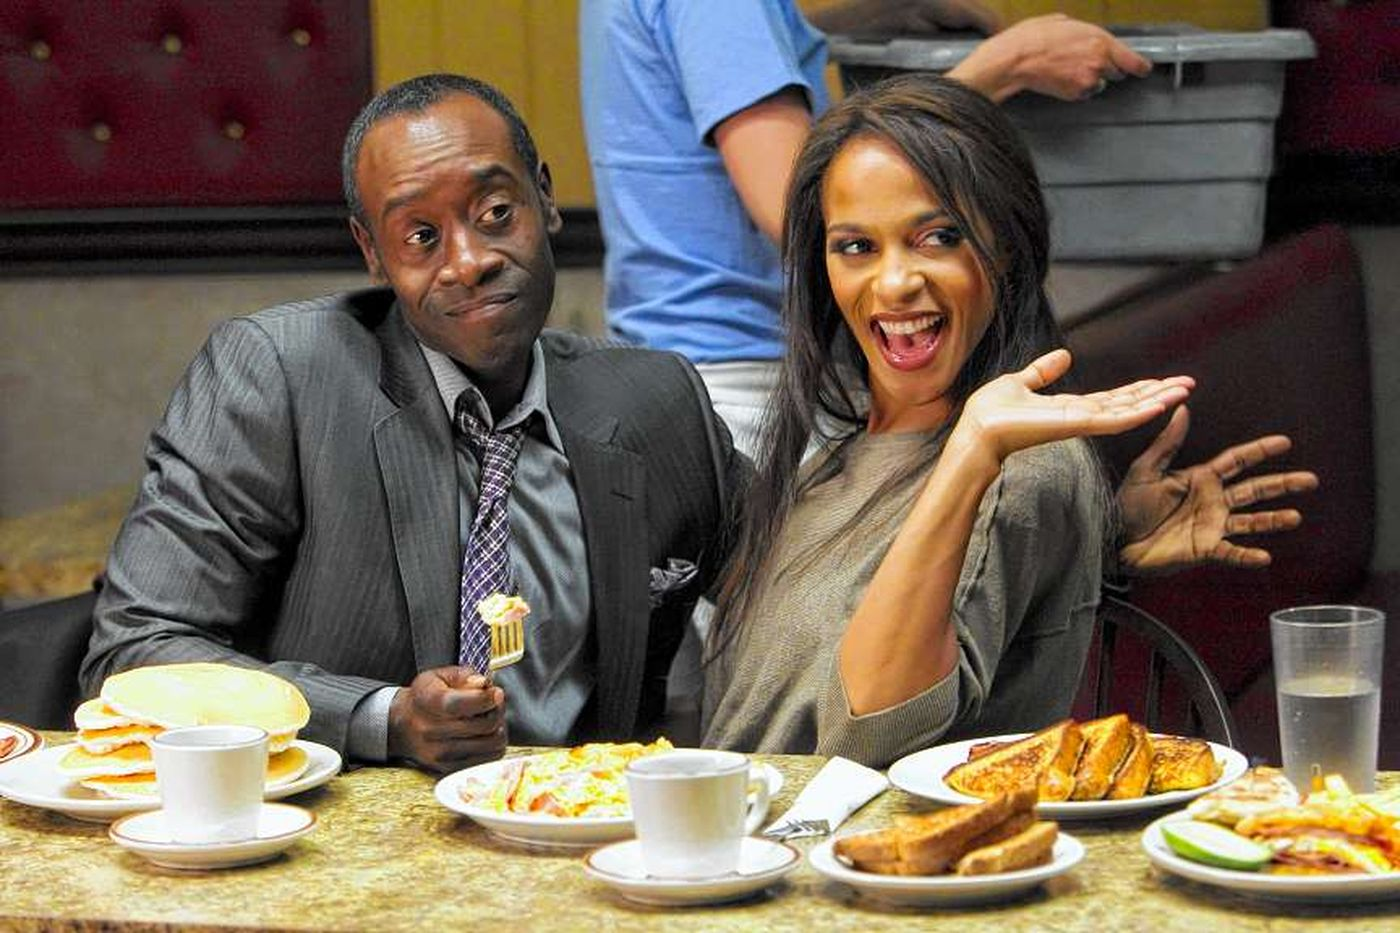 Don Cheadle as Marty Kaan and Megalyn Echikunwoke as April in 'House of Lies'